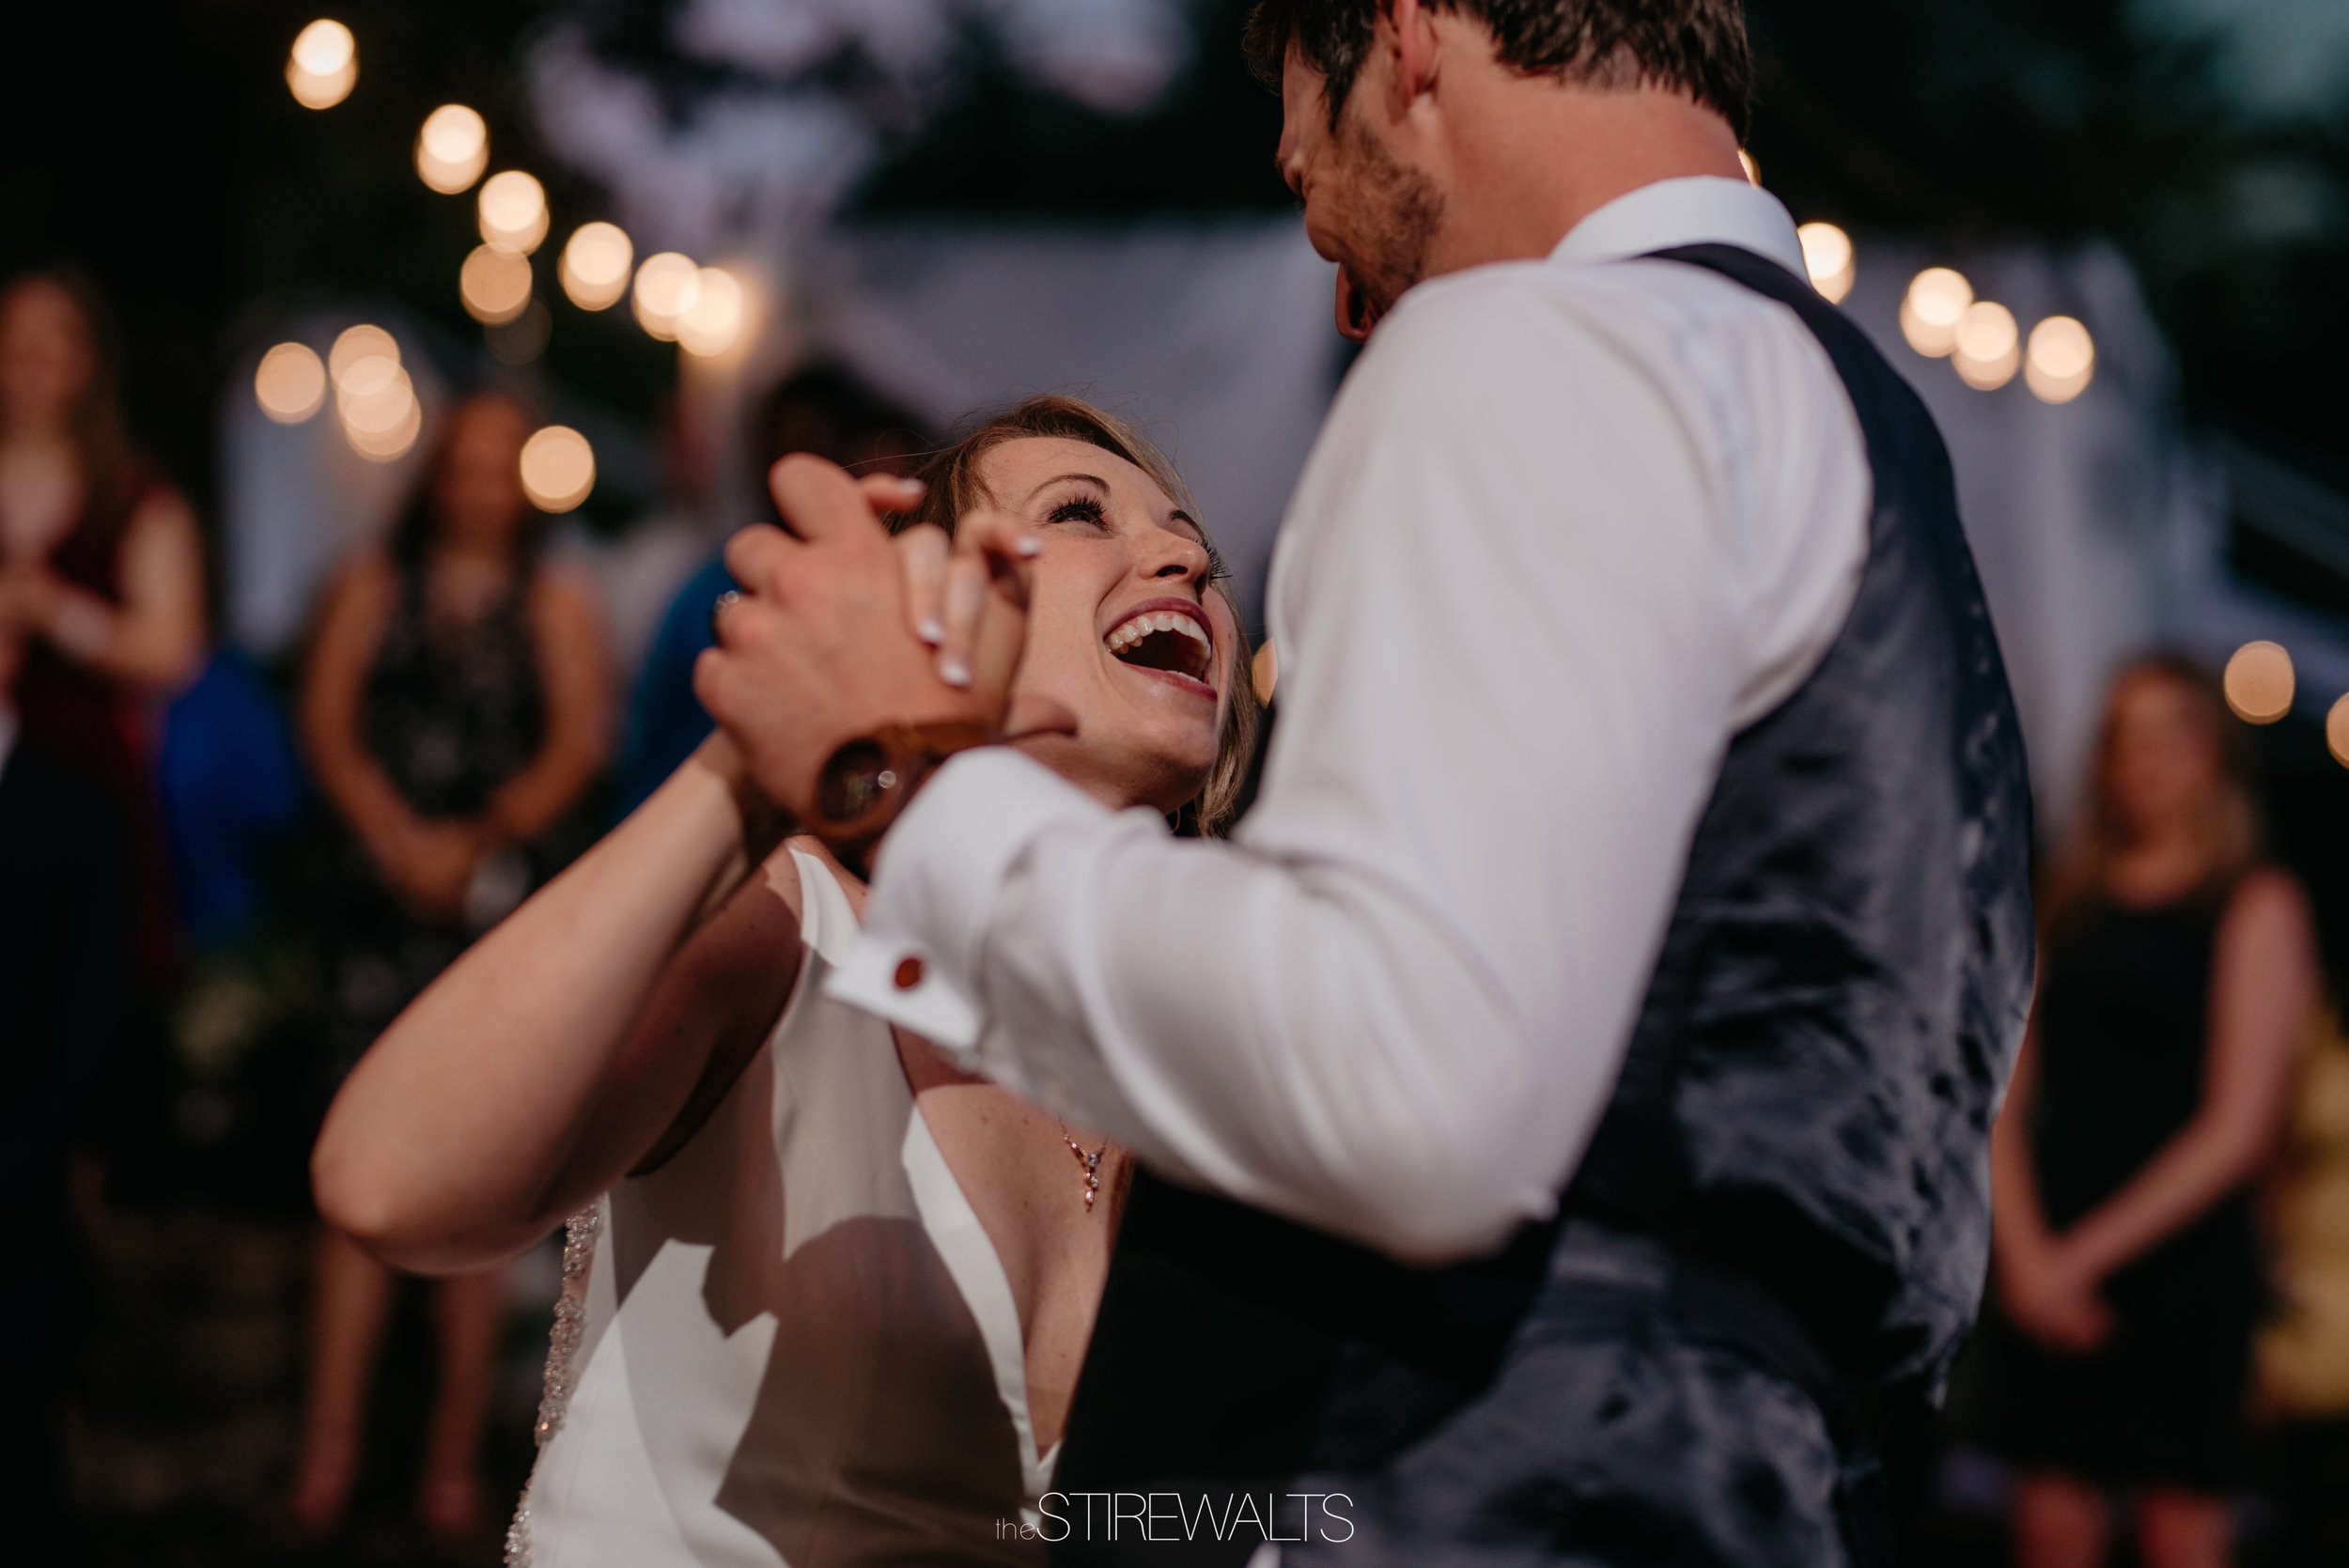 Kayla.Jay.Wedding.Blog.2018.©TheStirewalts-130.jpg